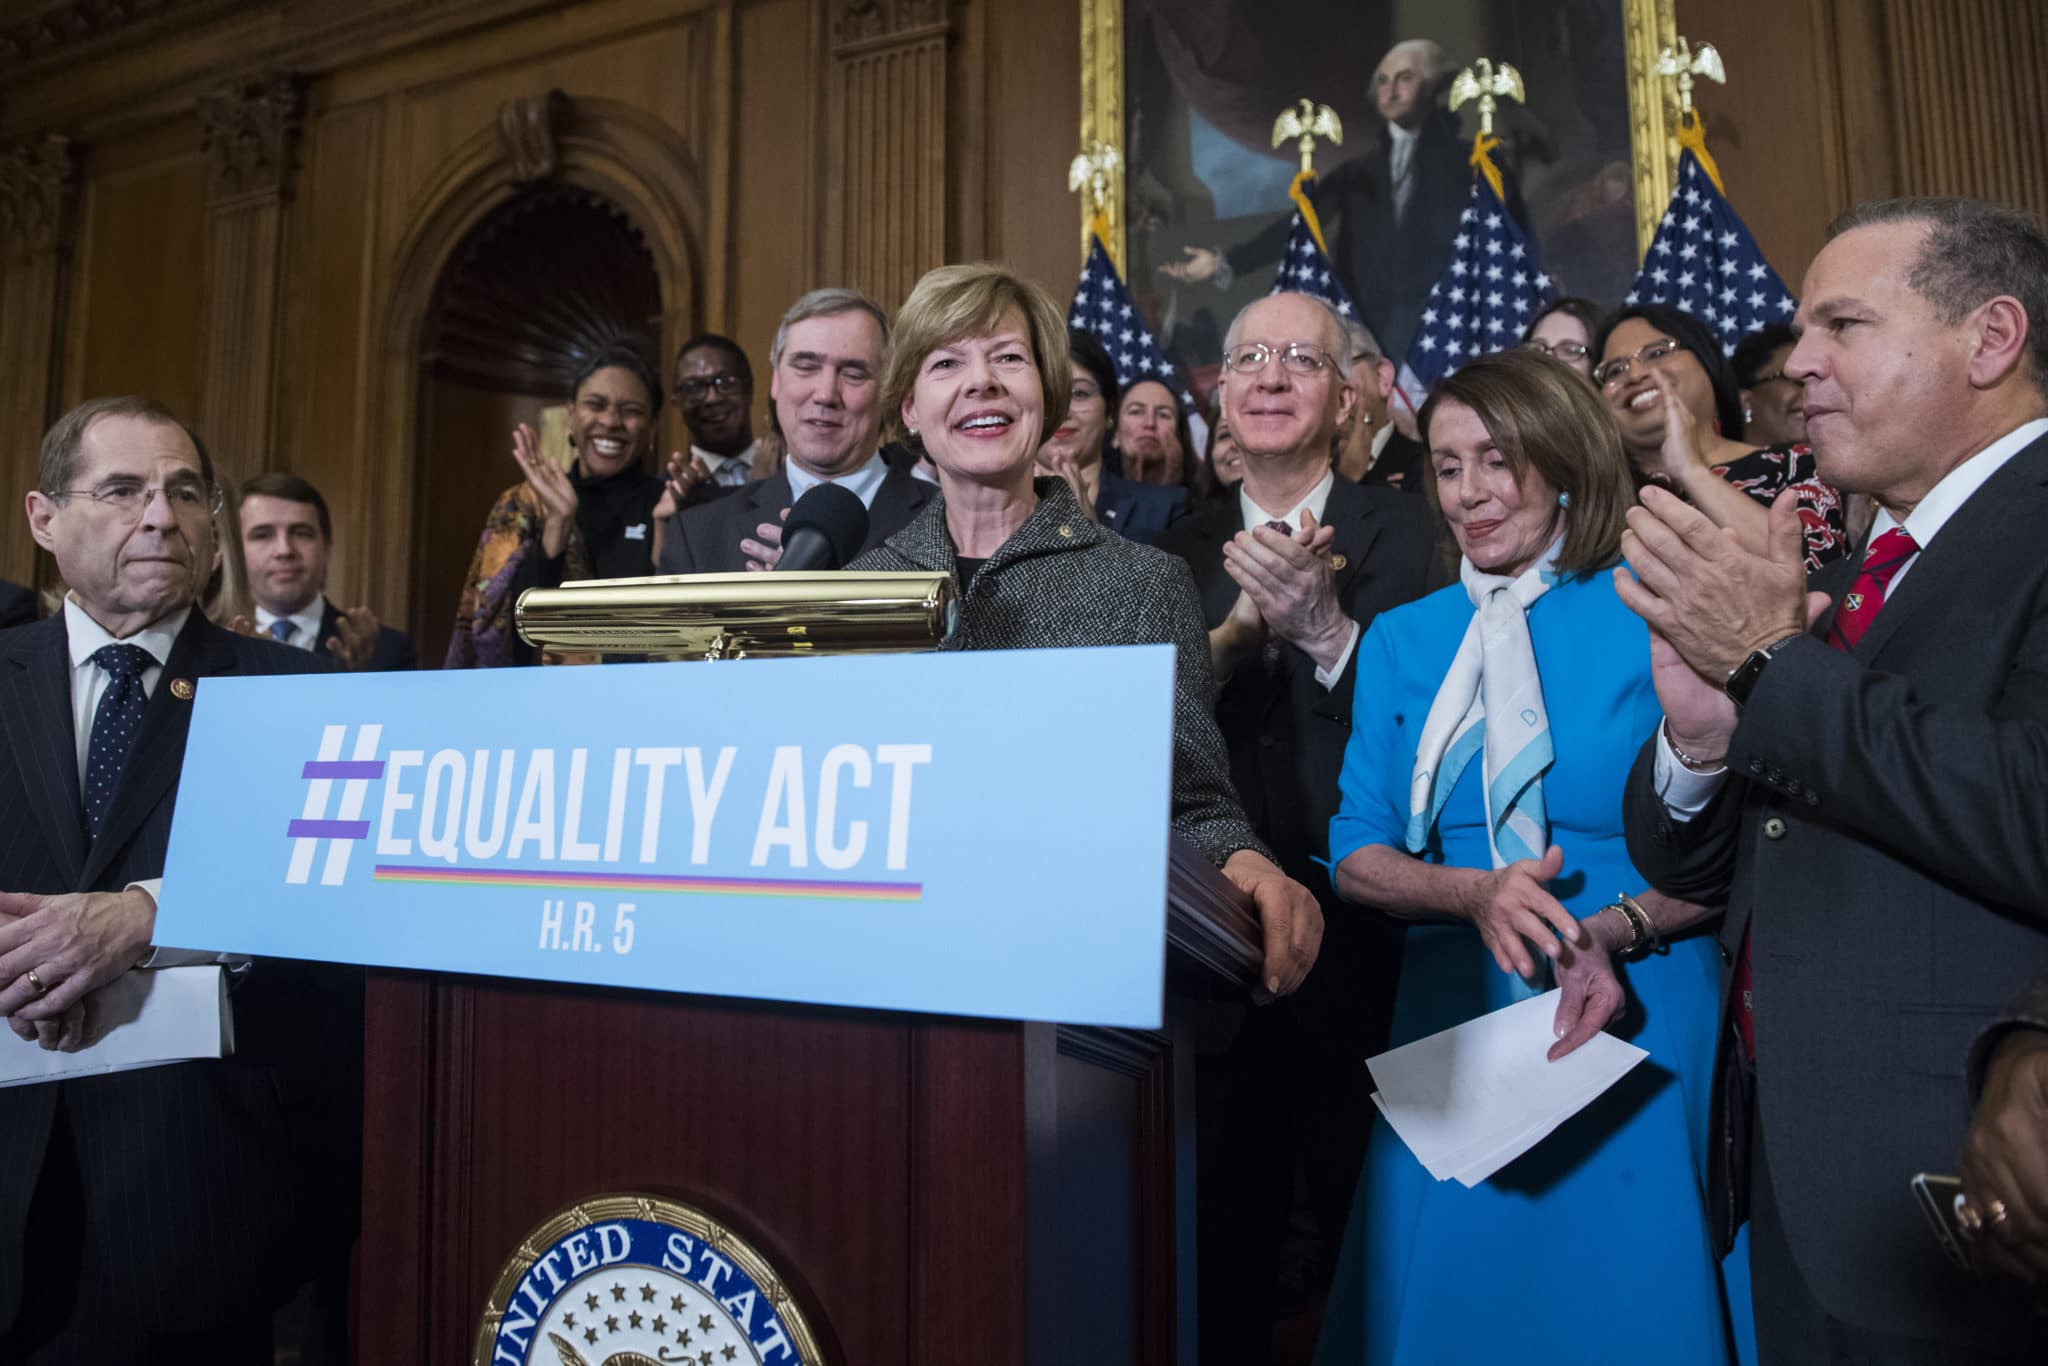 The Equality Act would amend existing civil rights legislation to bar discrimination based on gender identification and sexual orientation